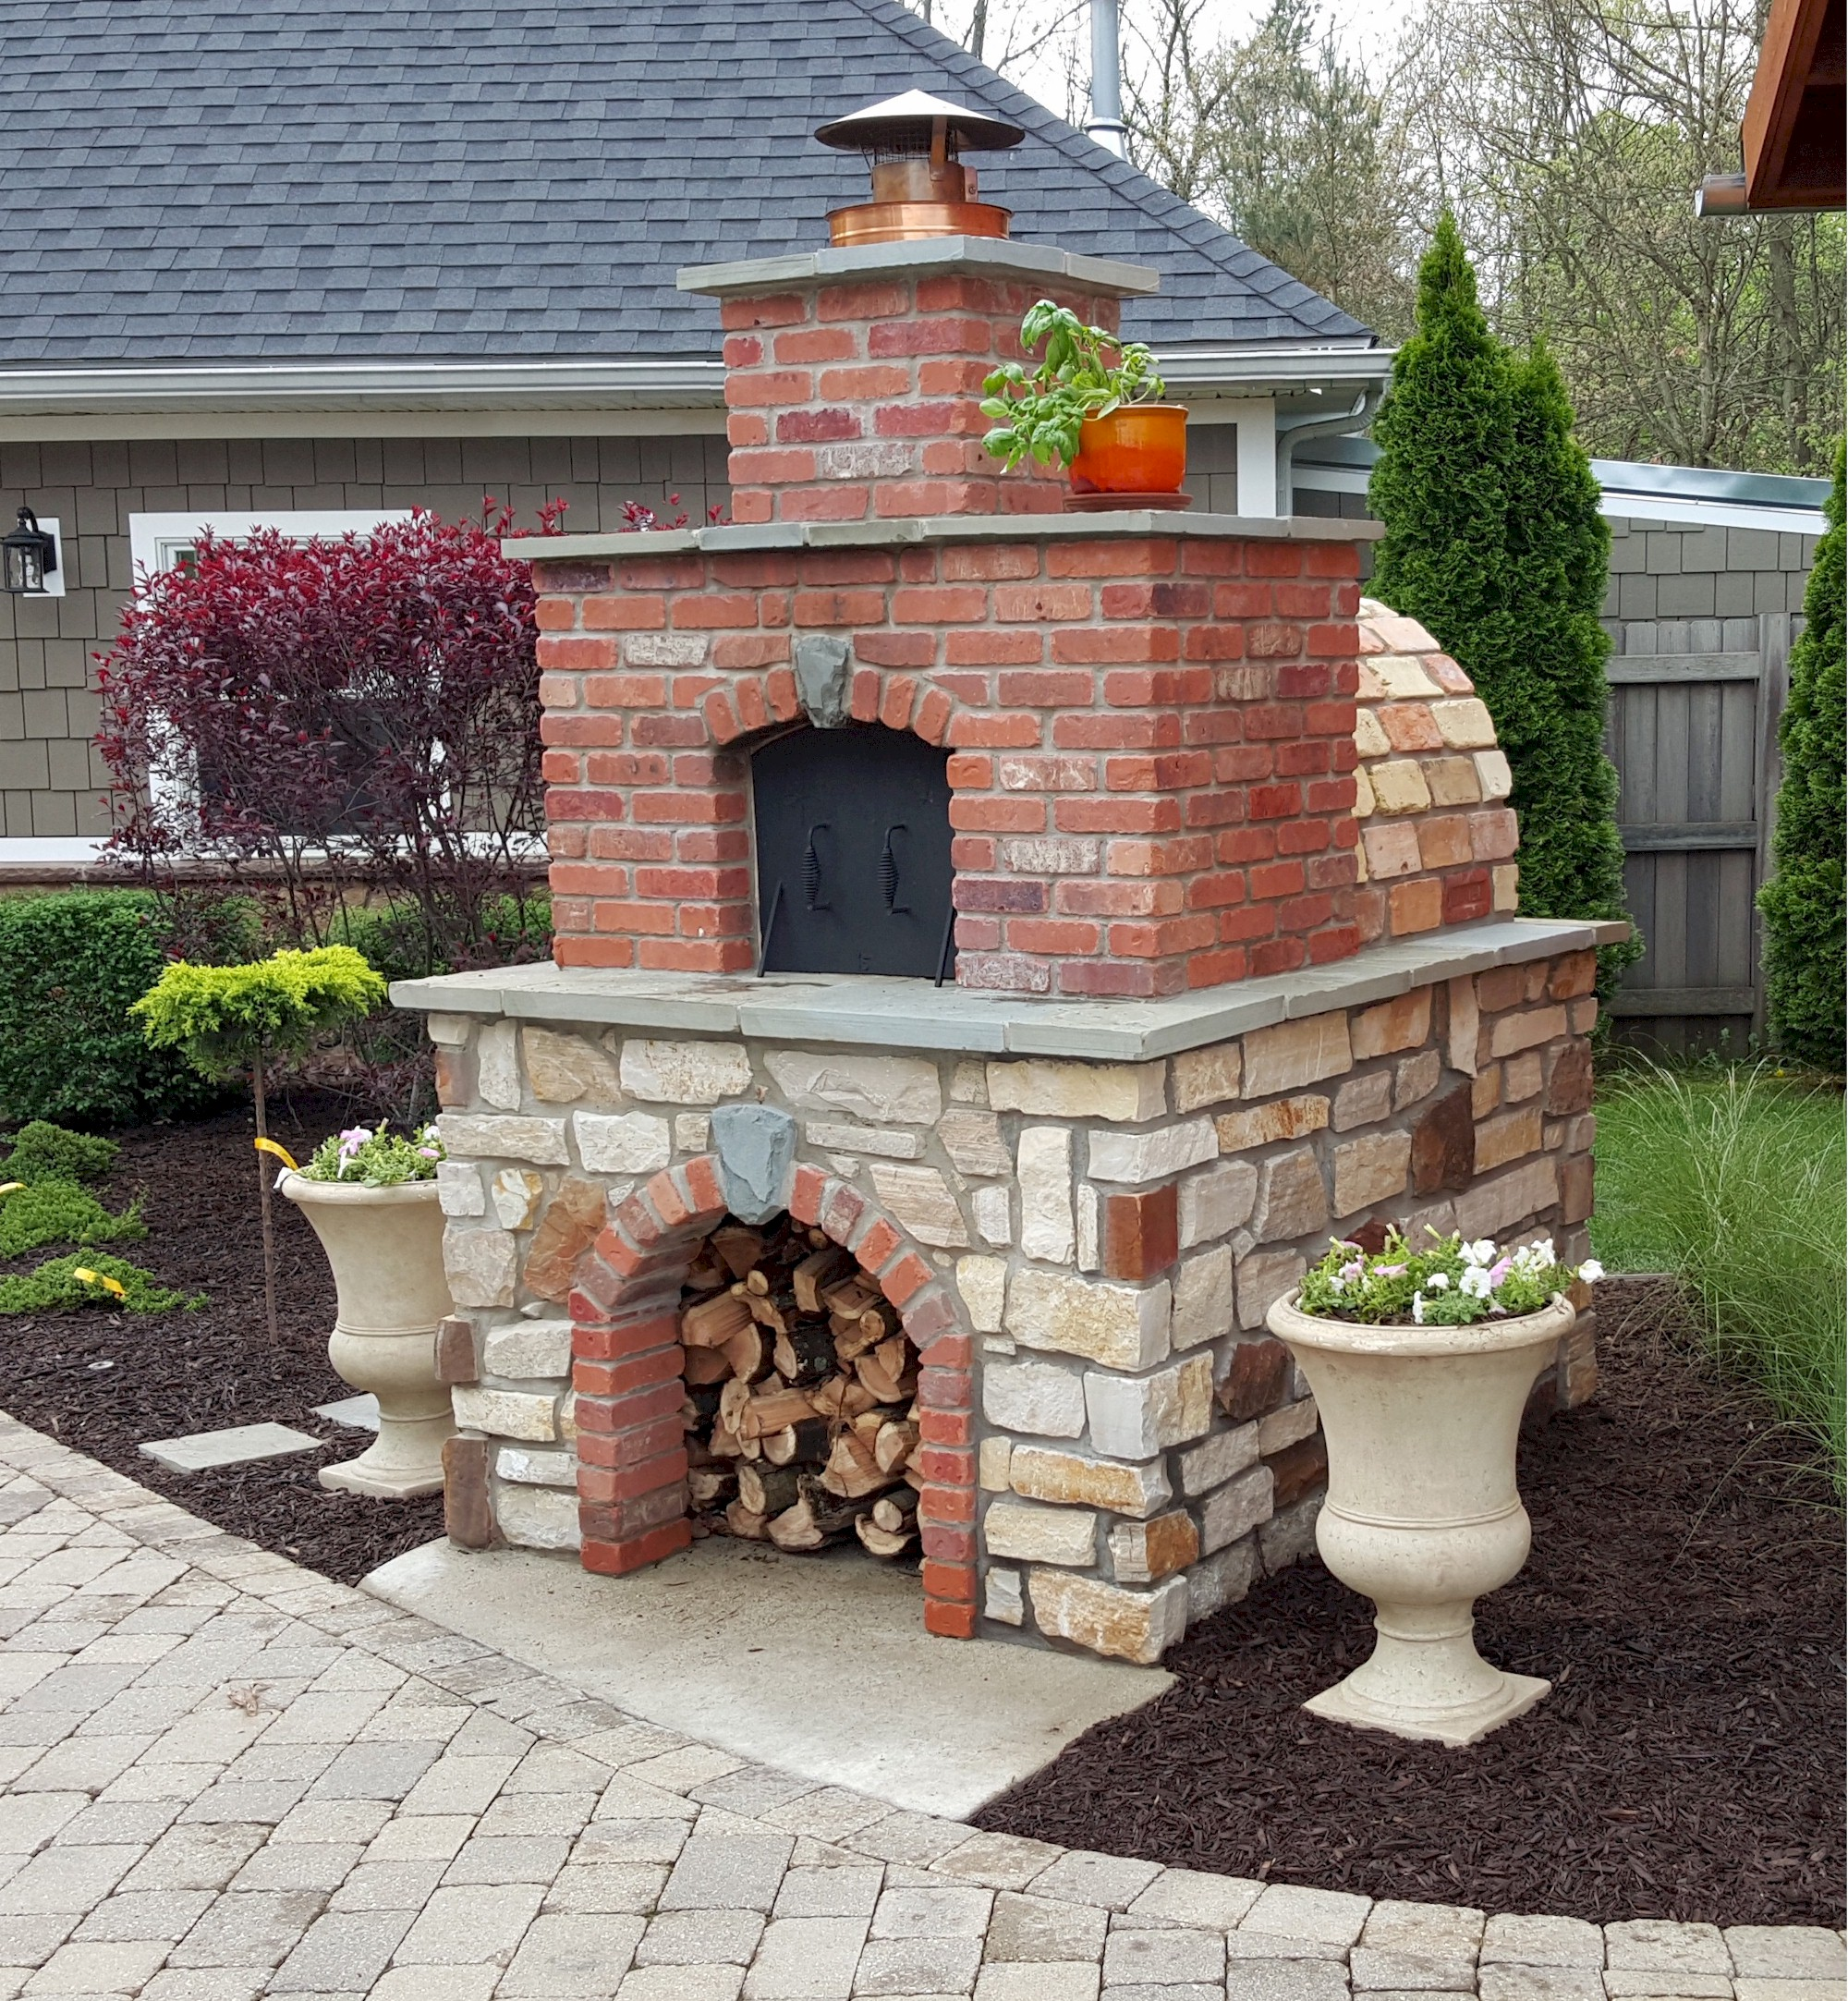 Diy Outdoor Pizza Oven Kits By Brickwood Ovens